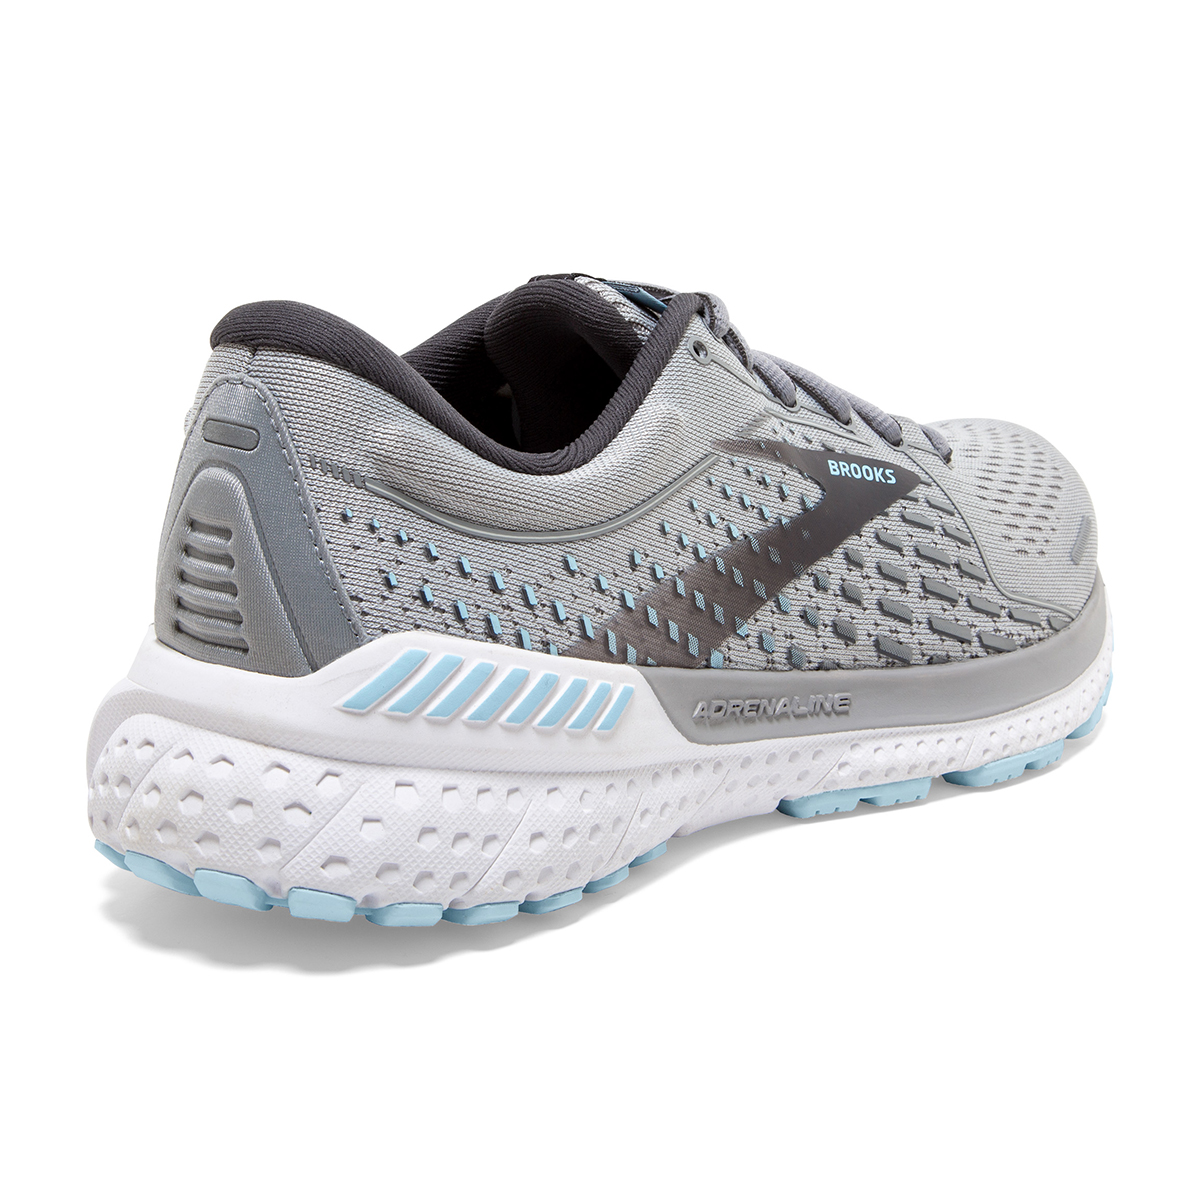 Women's Brooks Adrenaline GTS 21 Running Shoe - Color: Oyster/Alloy/Light Blue - Size: 5 - Width: Wide, Oyster/Alloy/Light Blue, large, image 4